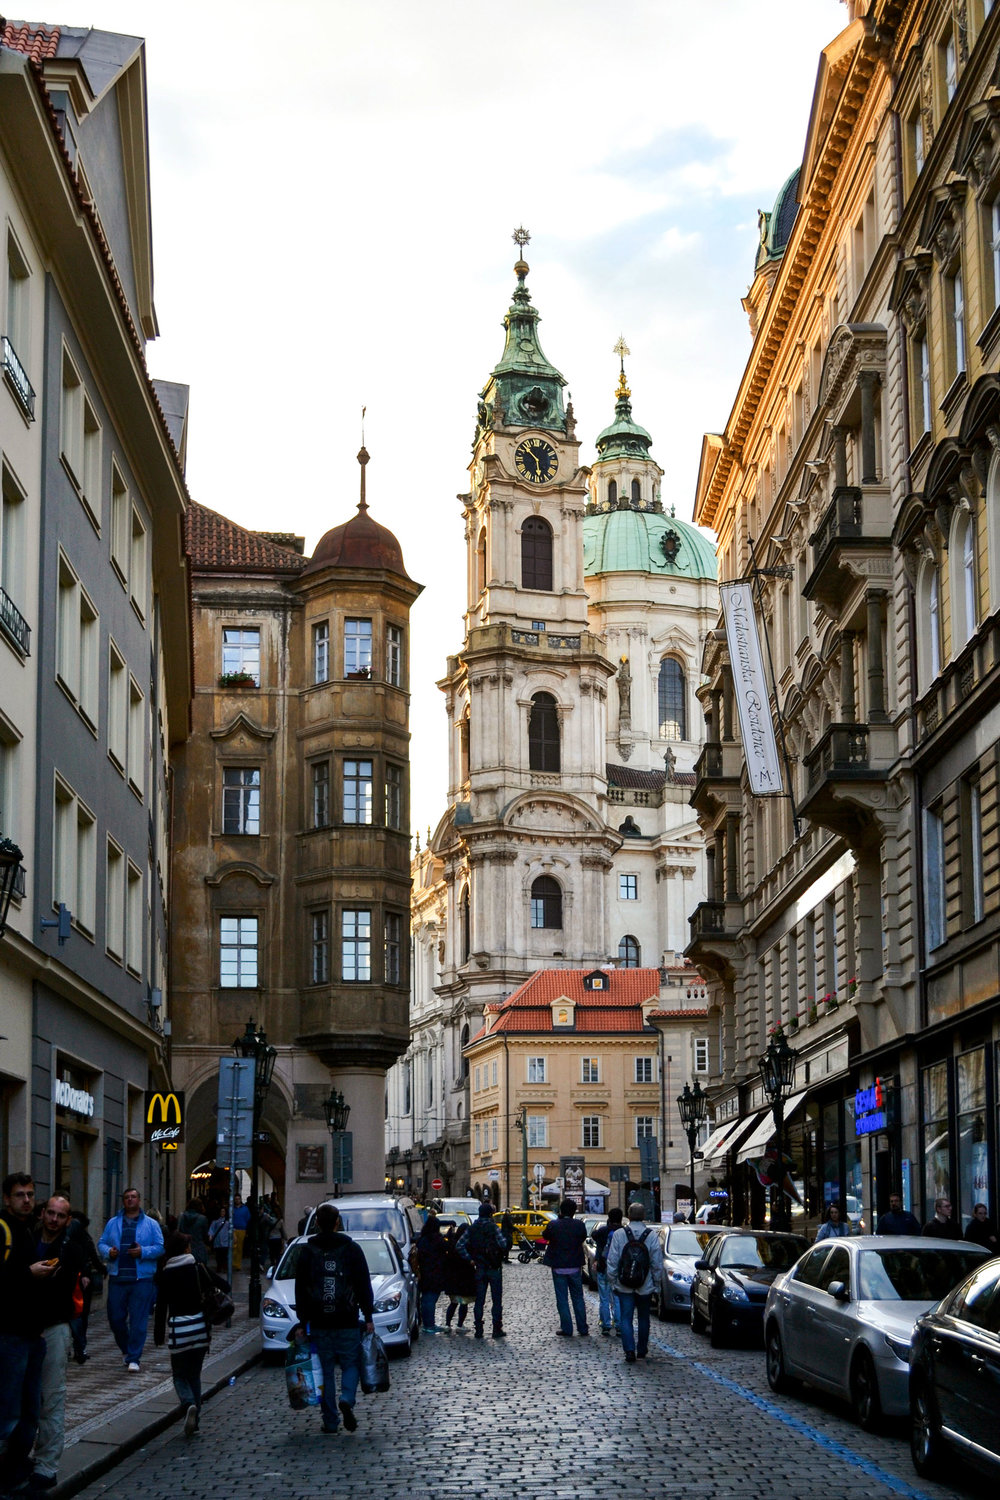 Walking through the streets of Prague